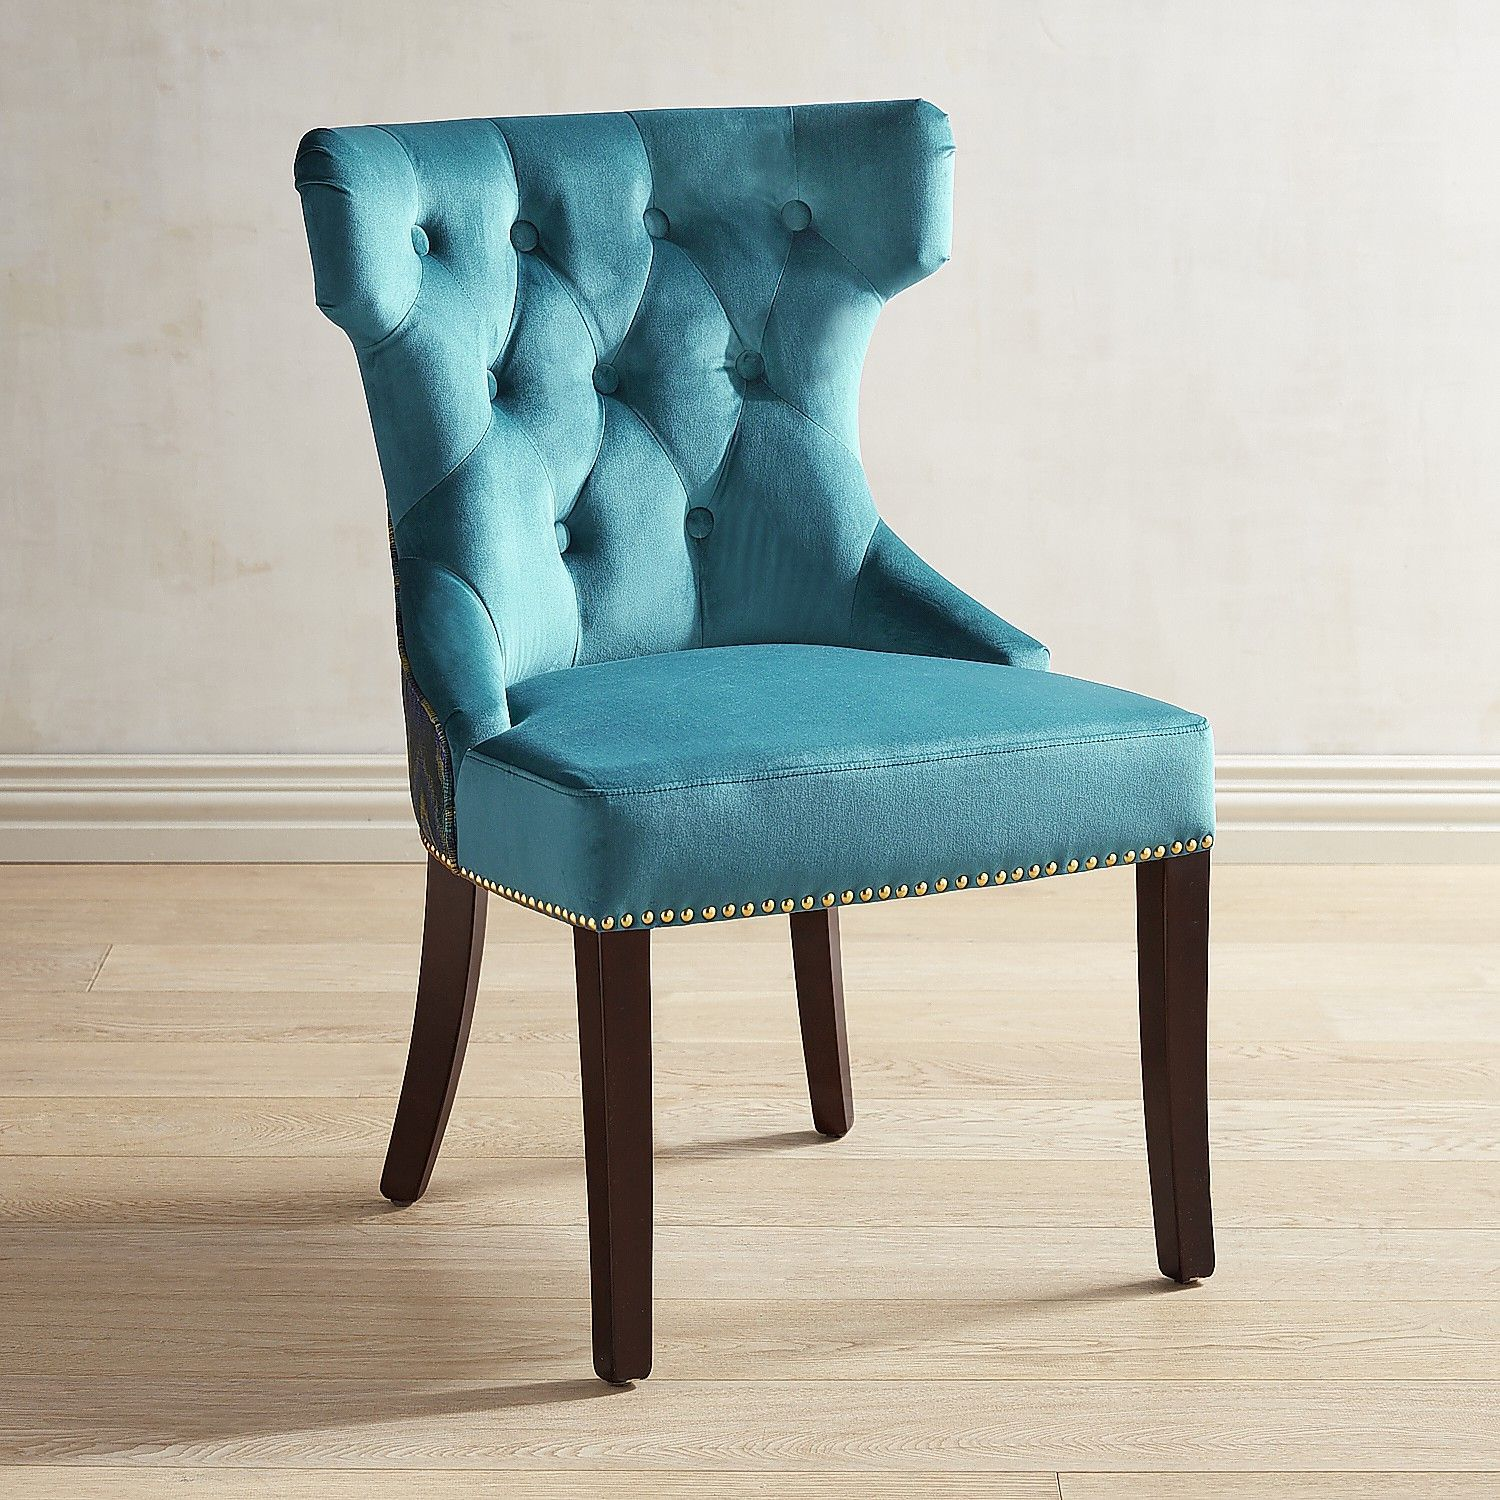 Hourglass Plume-Teal Dining Chair With Espresso Wood